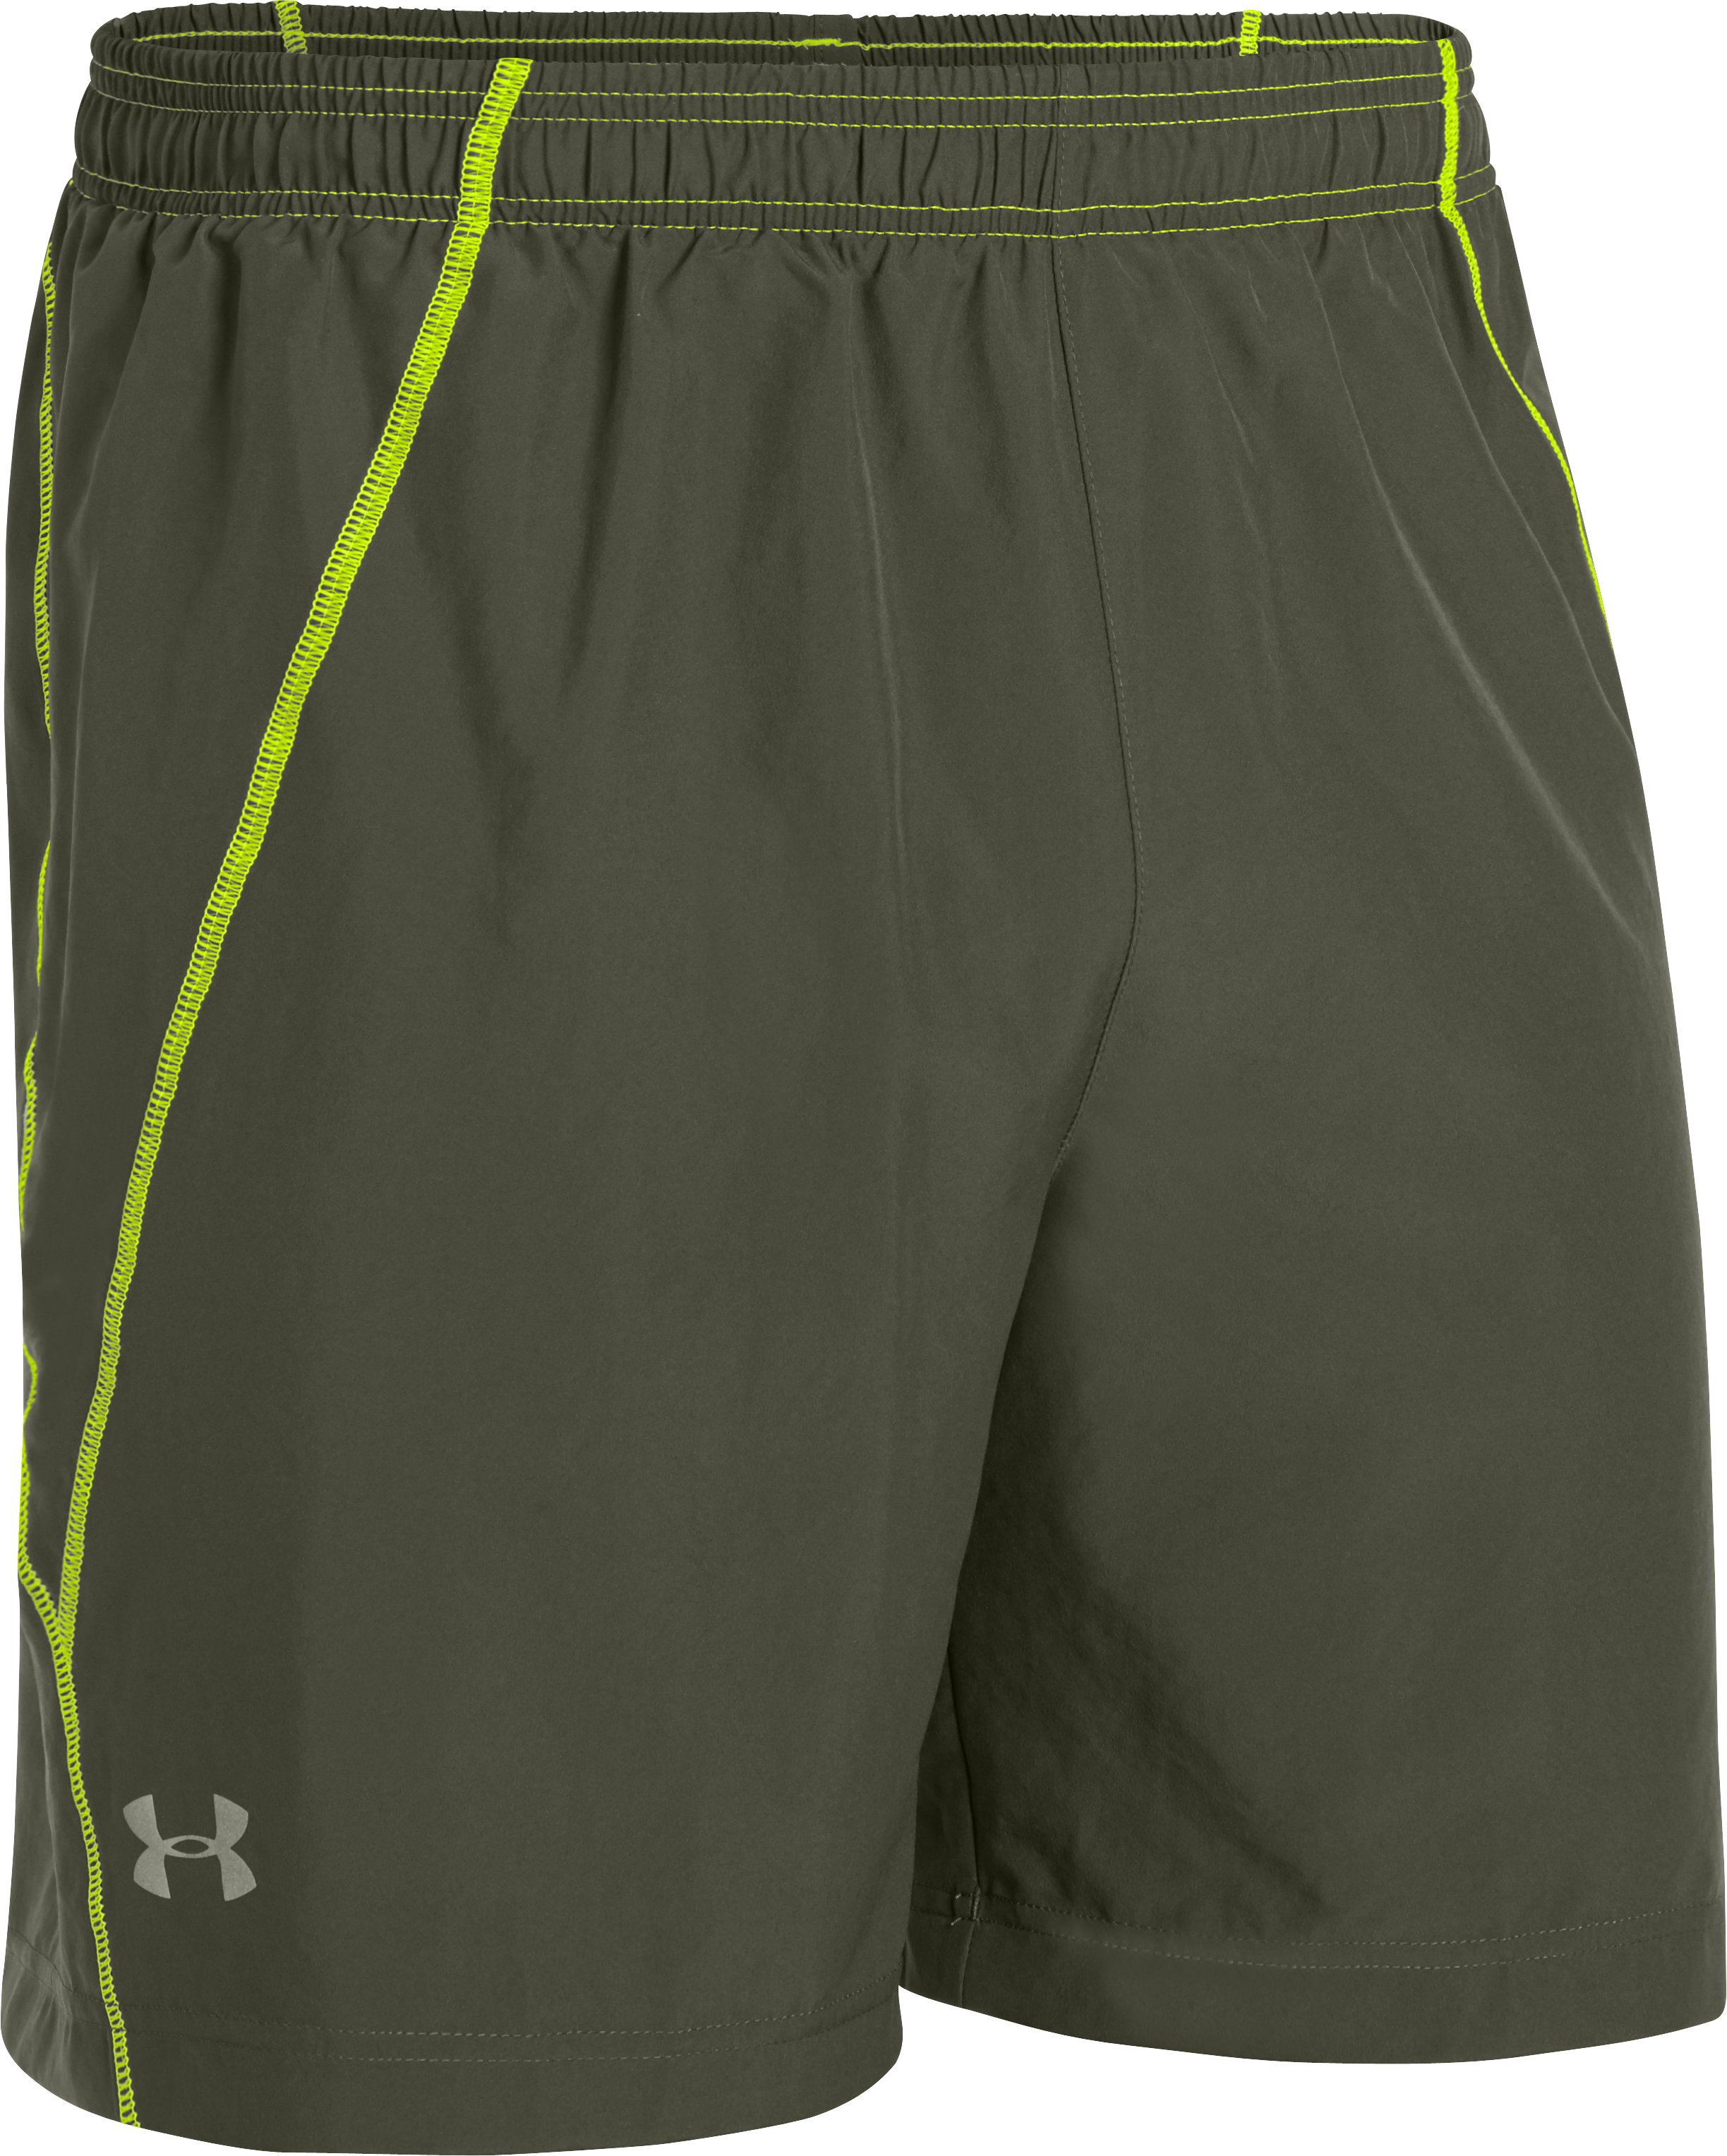 "Men's UA Run 7"" Shorts, Rough"